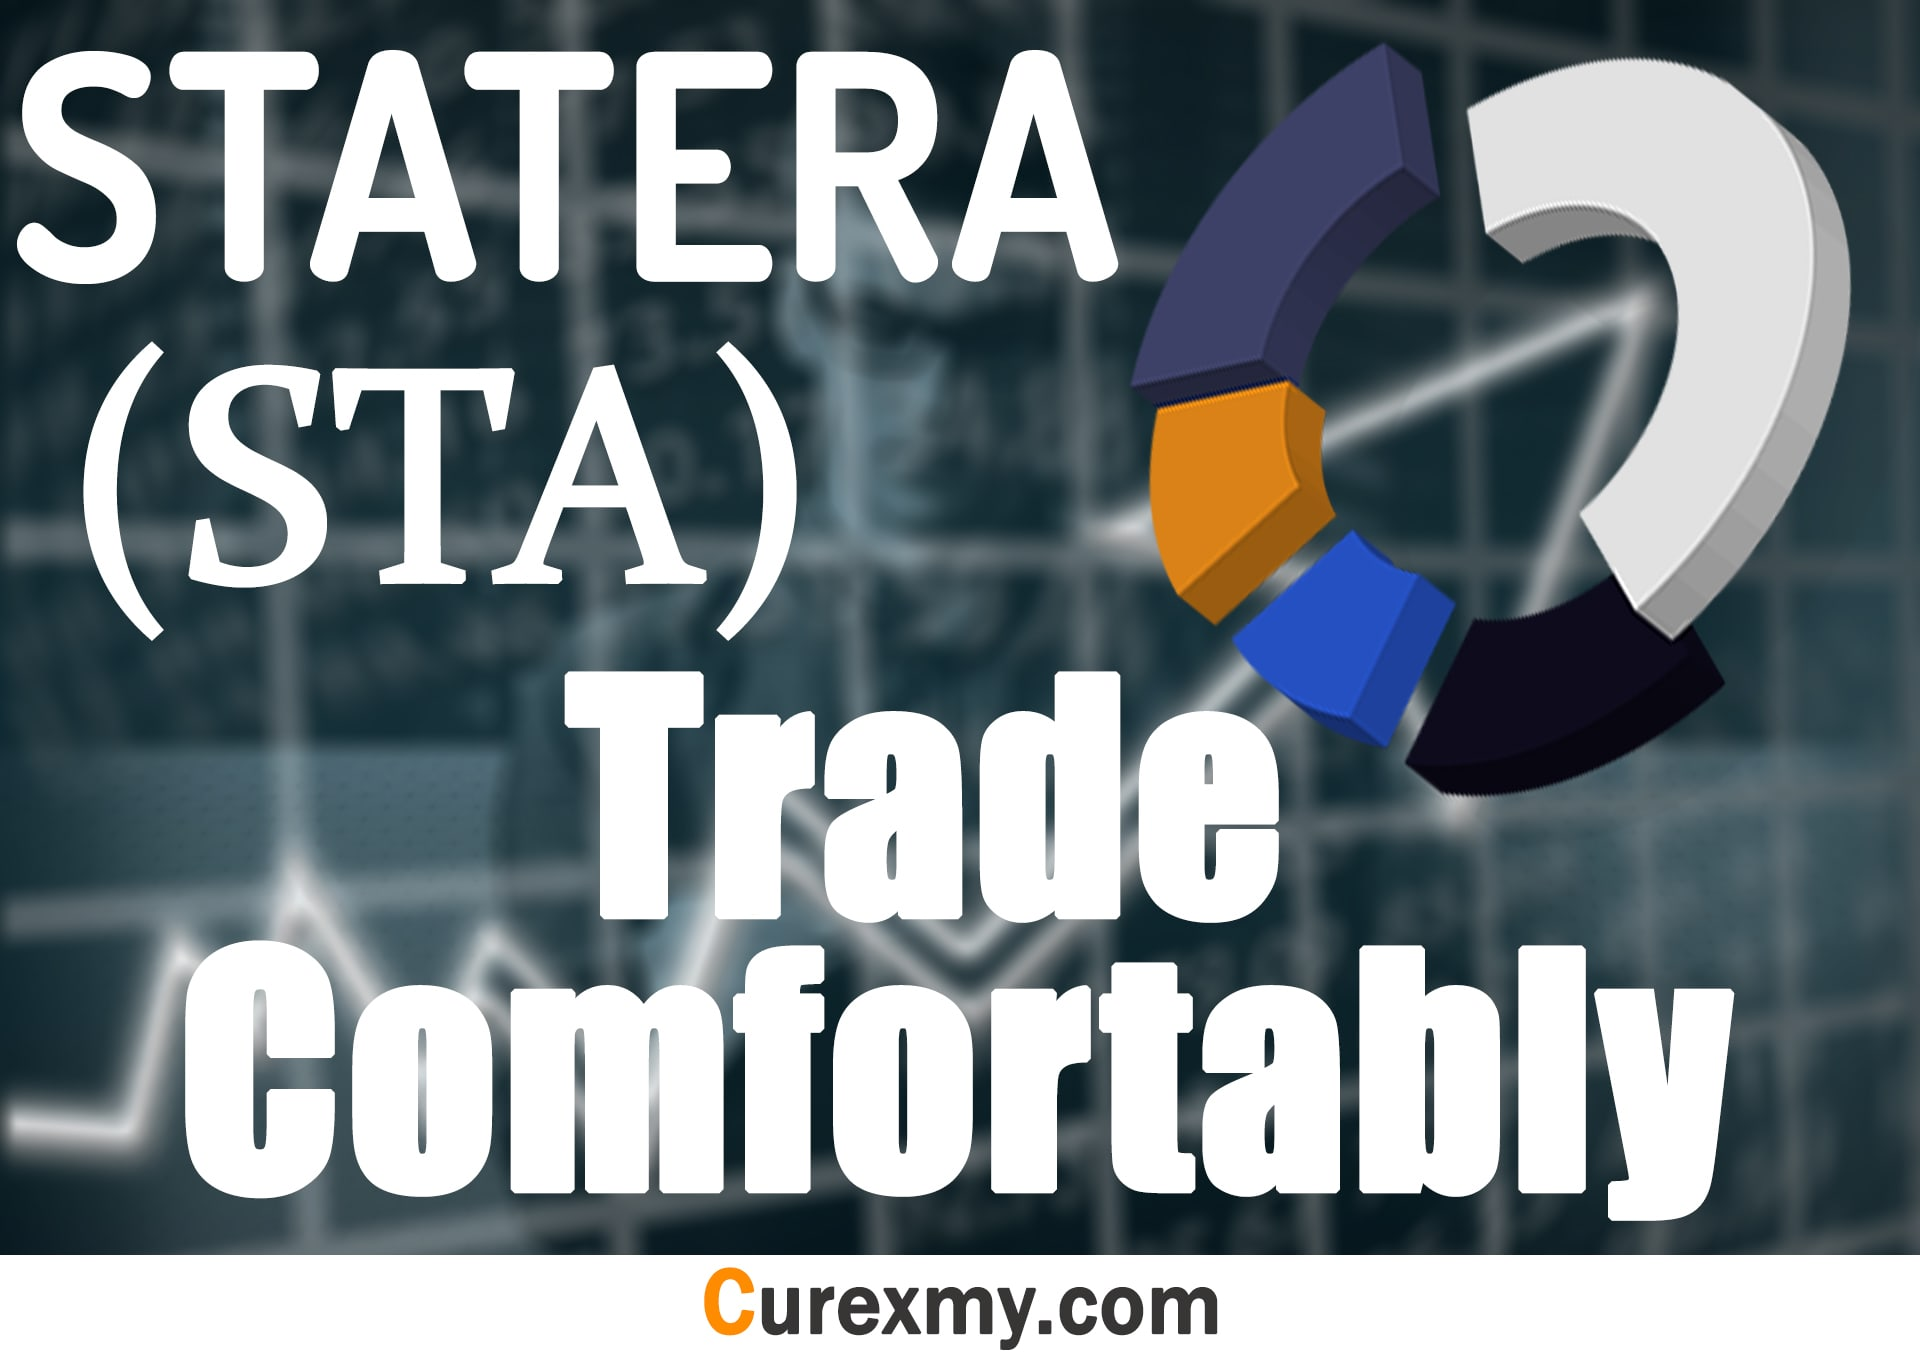 How To Trade Or Buy/Sell Statera (STA) Comfortability